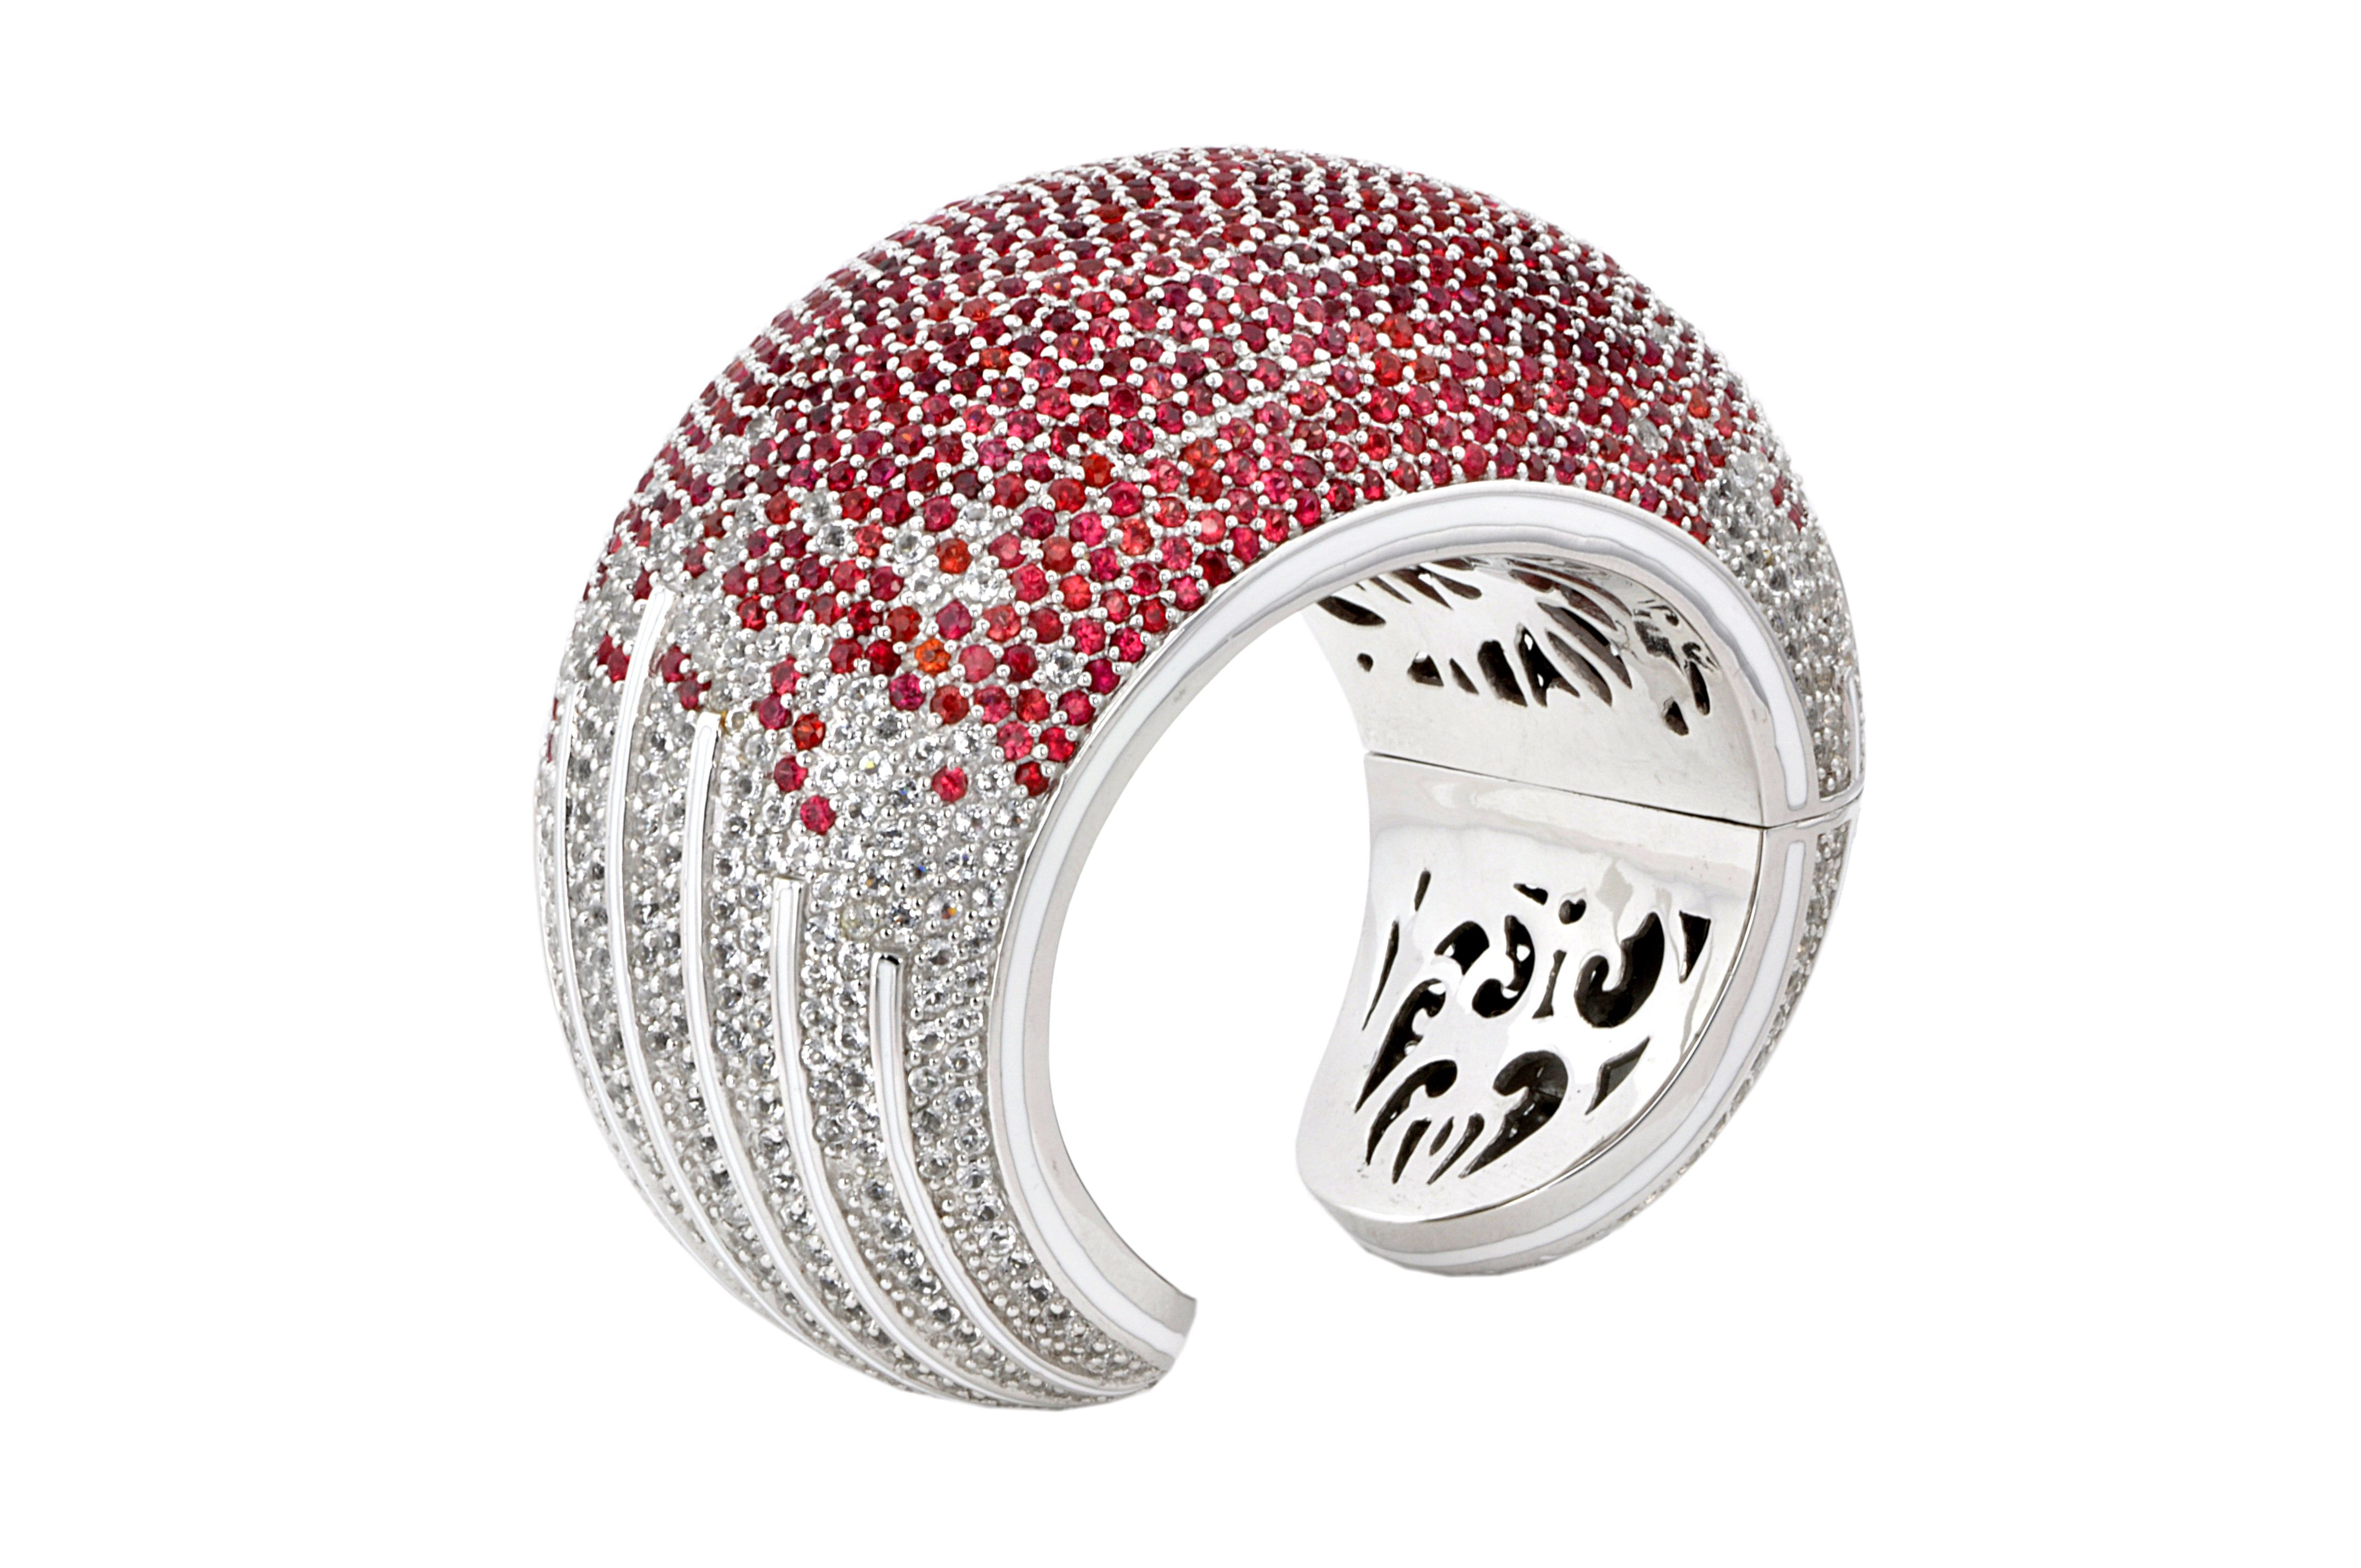 Manhattan Cuff from The Manhattan Collection: hand made 925 sterling silver plated with silver rhodium, hand-set with red sapphires and white topaz accented by white enamel.